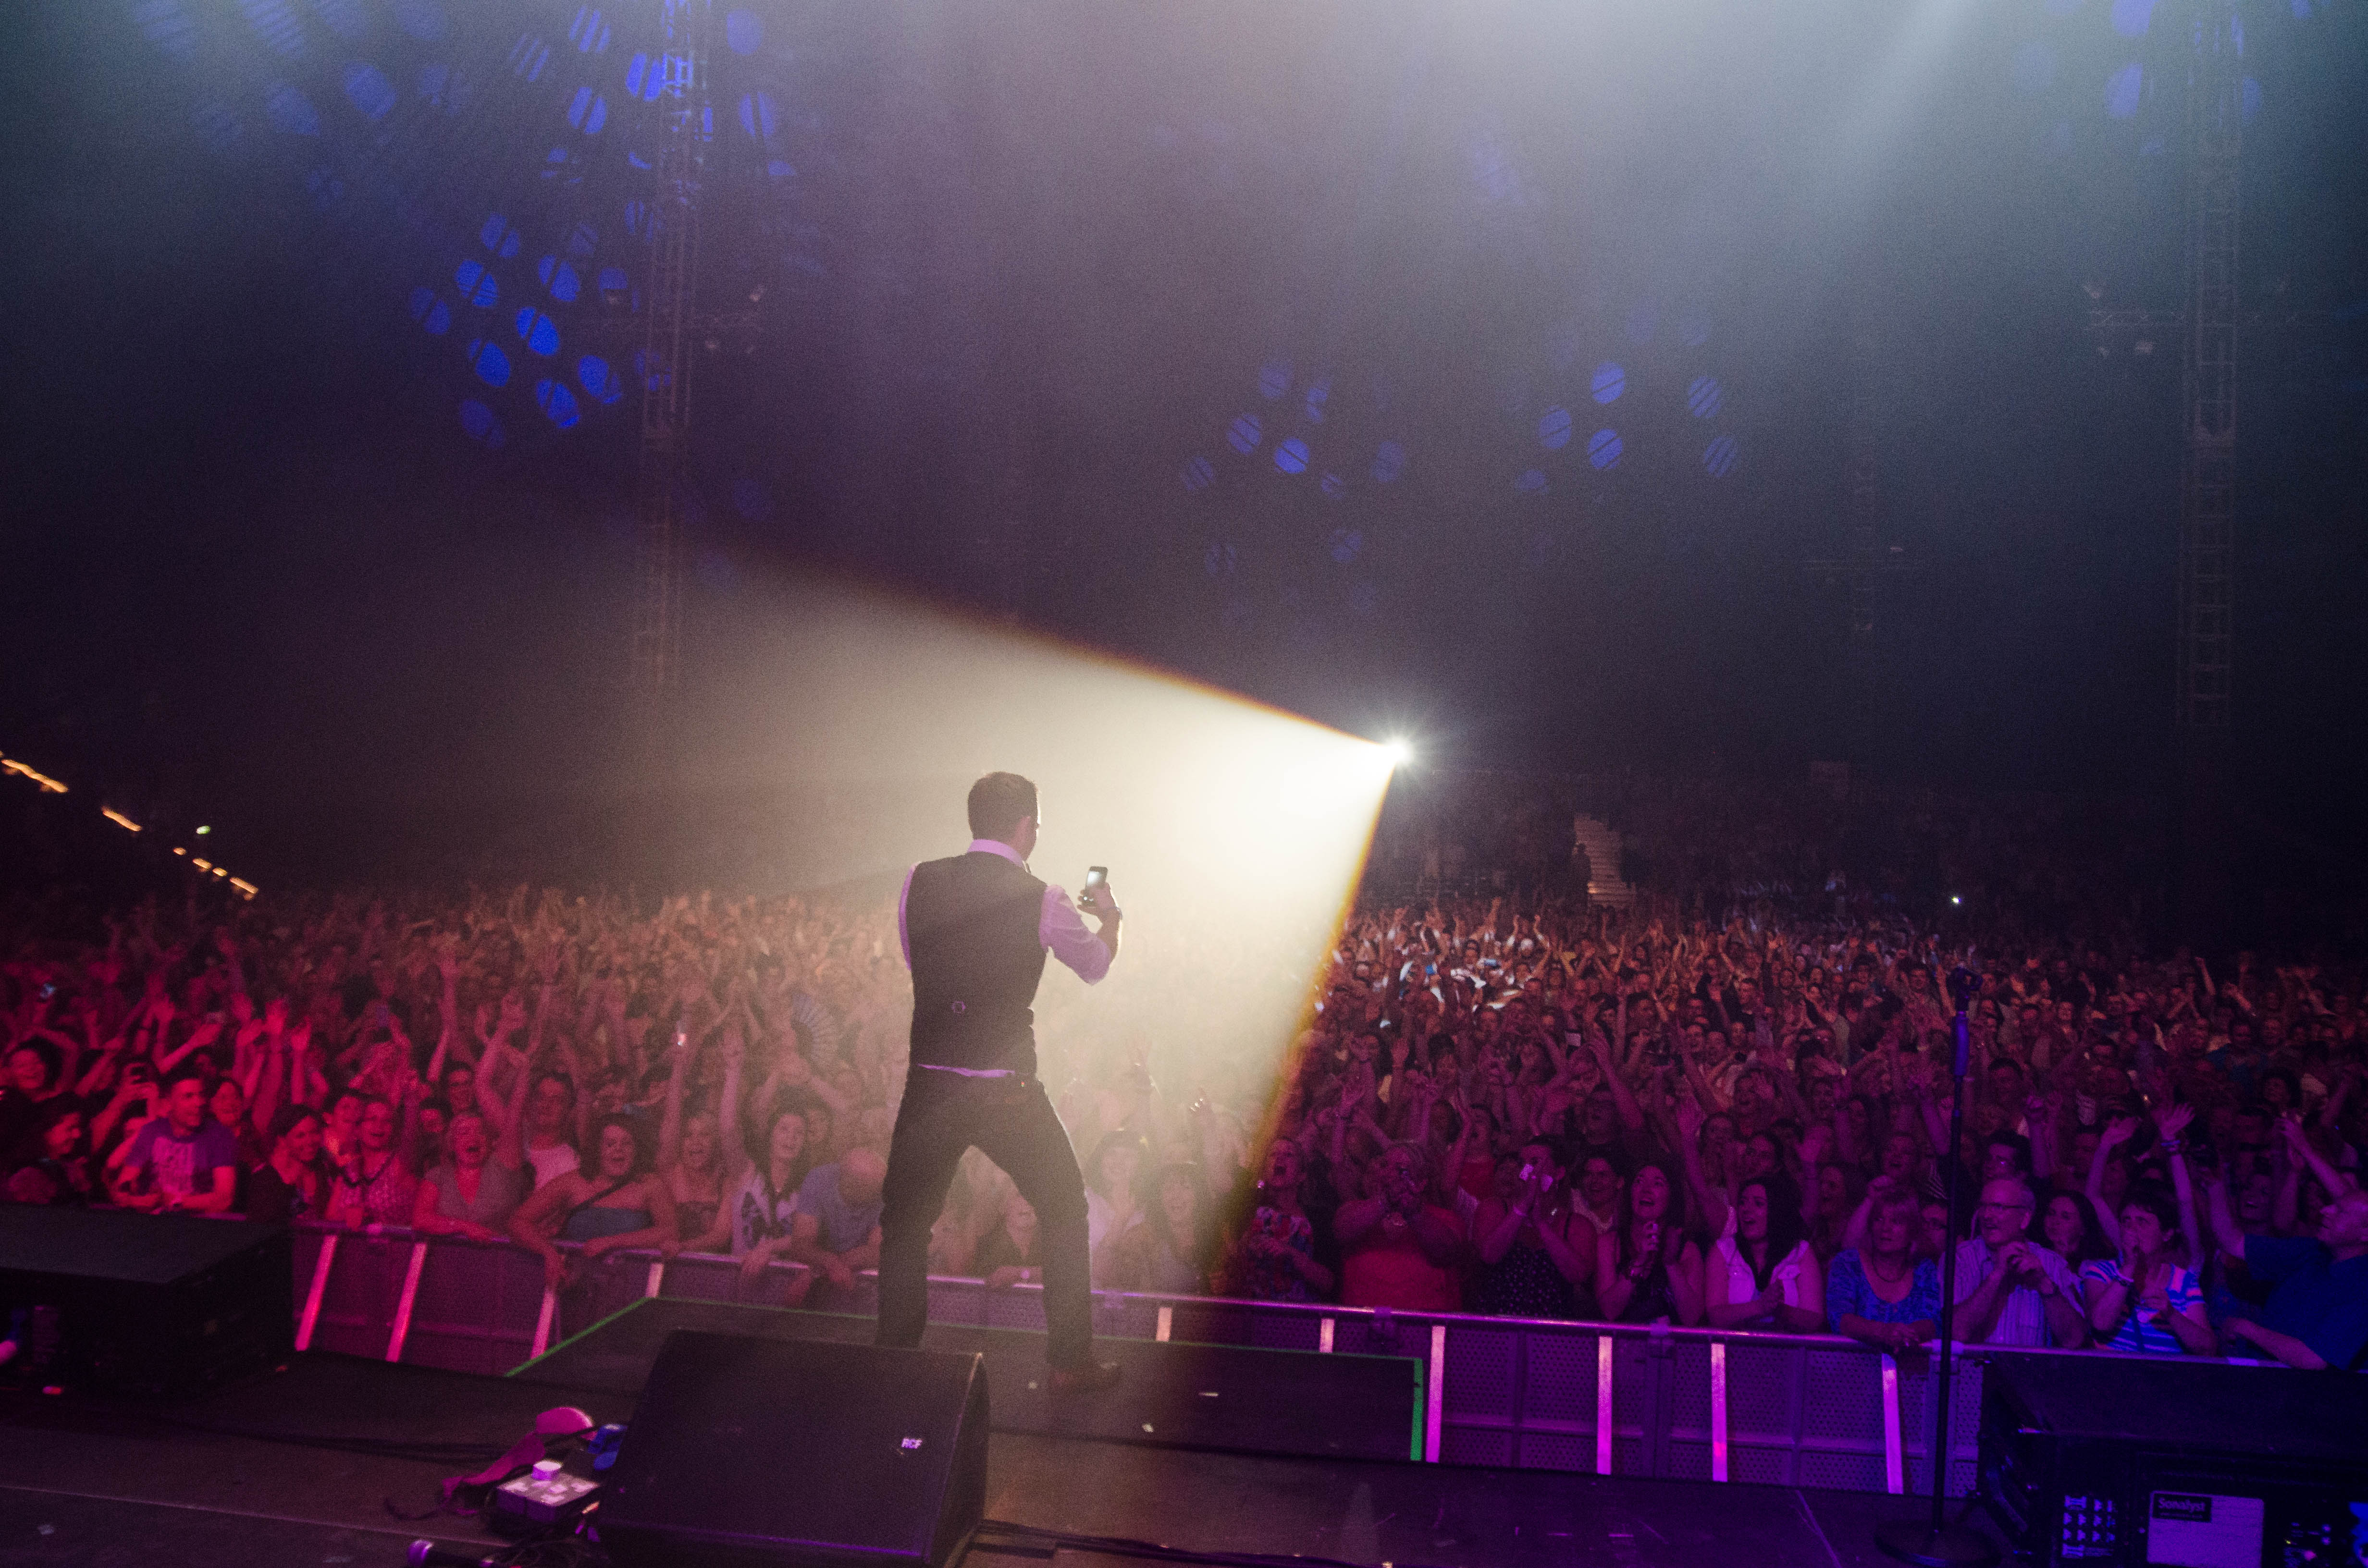 nathan-carter-at-the-marquee-cork-by-sean-smyth-15-6-14-51-of-55